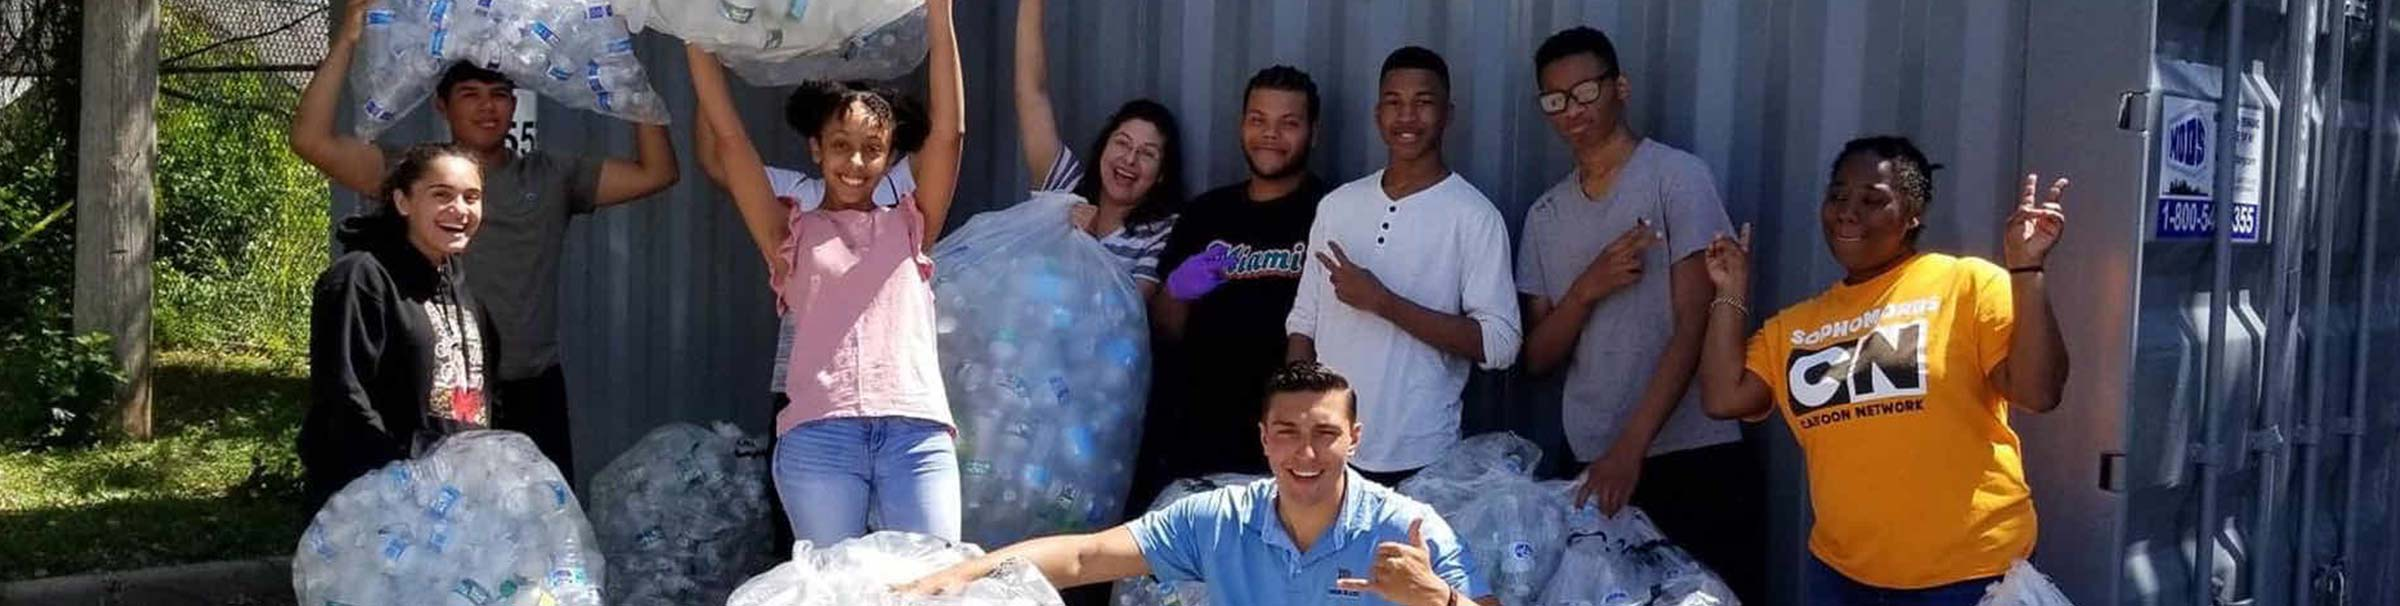 Youth Community Action Center  (YCAC)